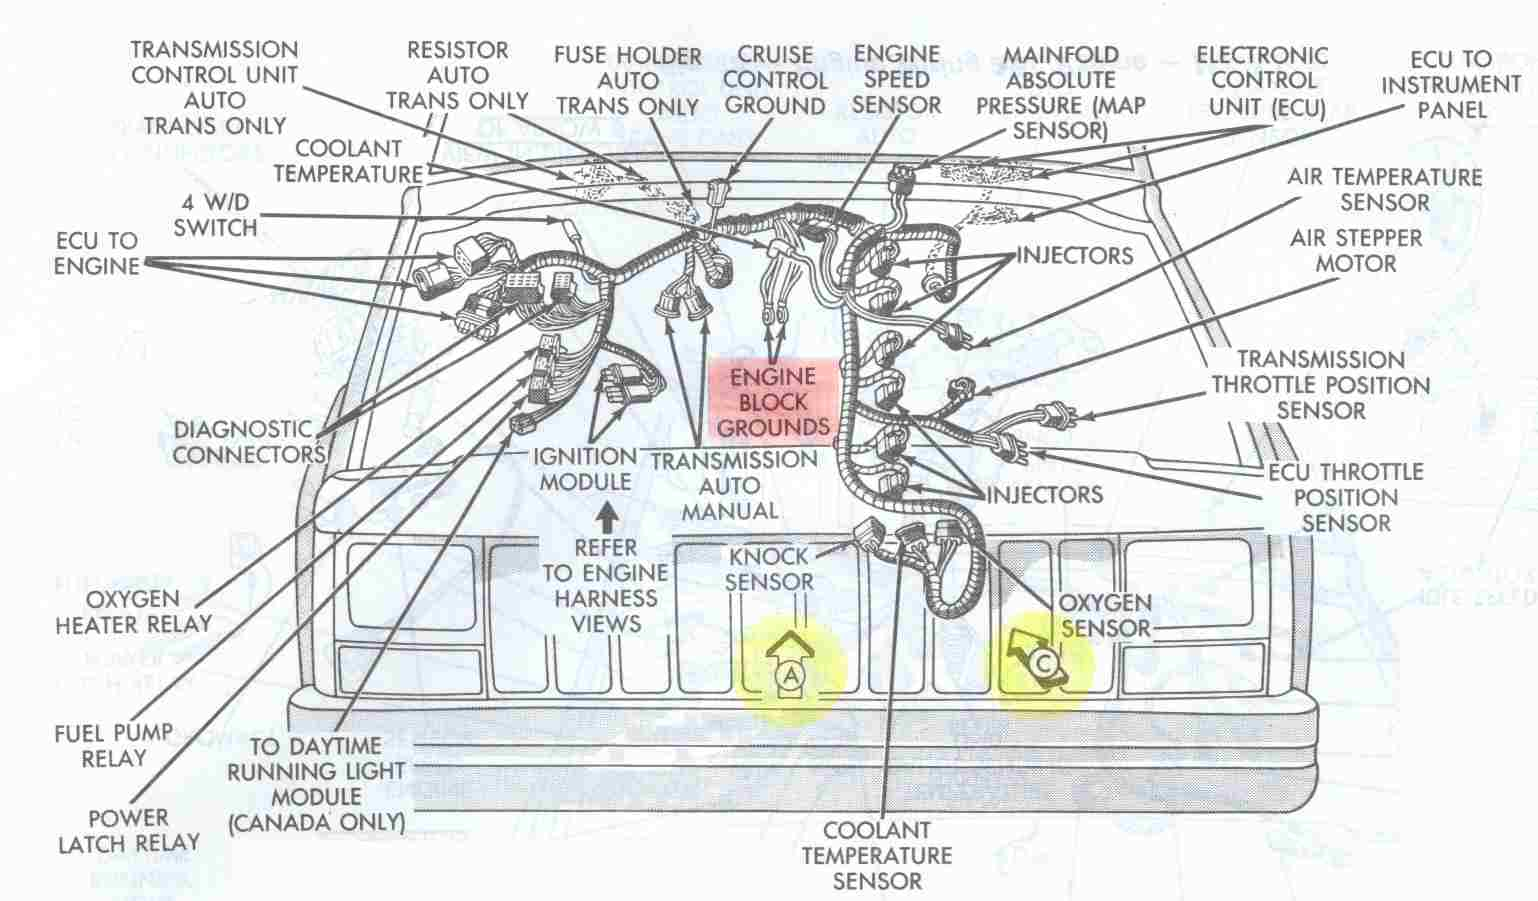 Electrical_Engine_Ground_Points_Overview jeep cherokee electrical diagnosing erratic behavior of engine 89 jeep cherokee wiring harness at arjmand.co